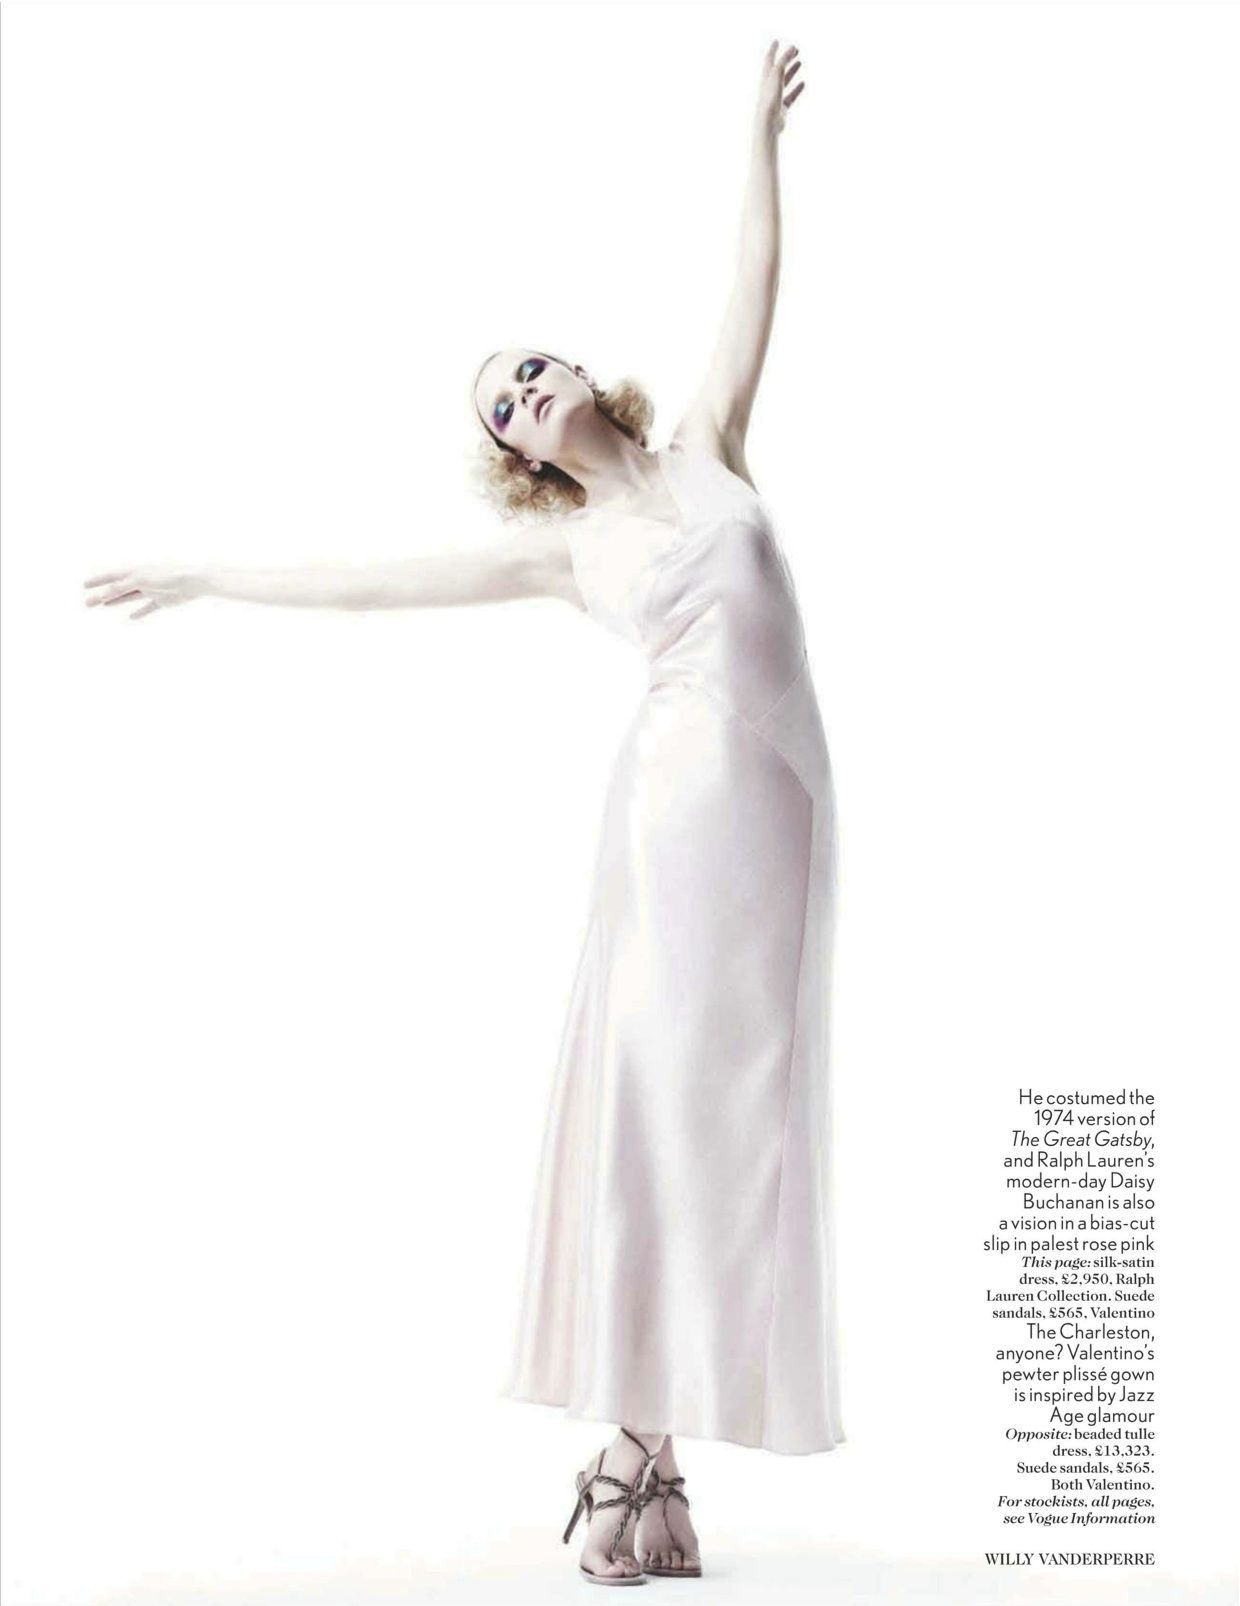 Guinevere van Seenus photographed by Willy Vanderperre for Vogue UK, April 2012